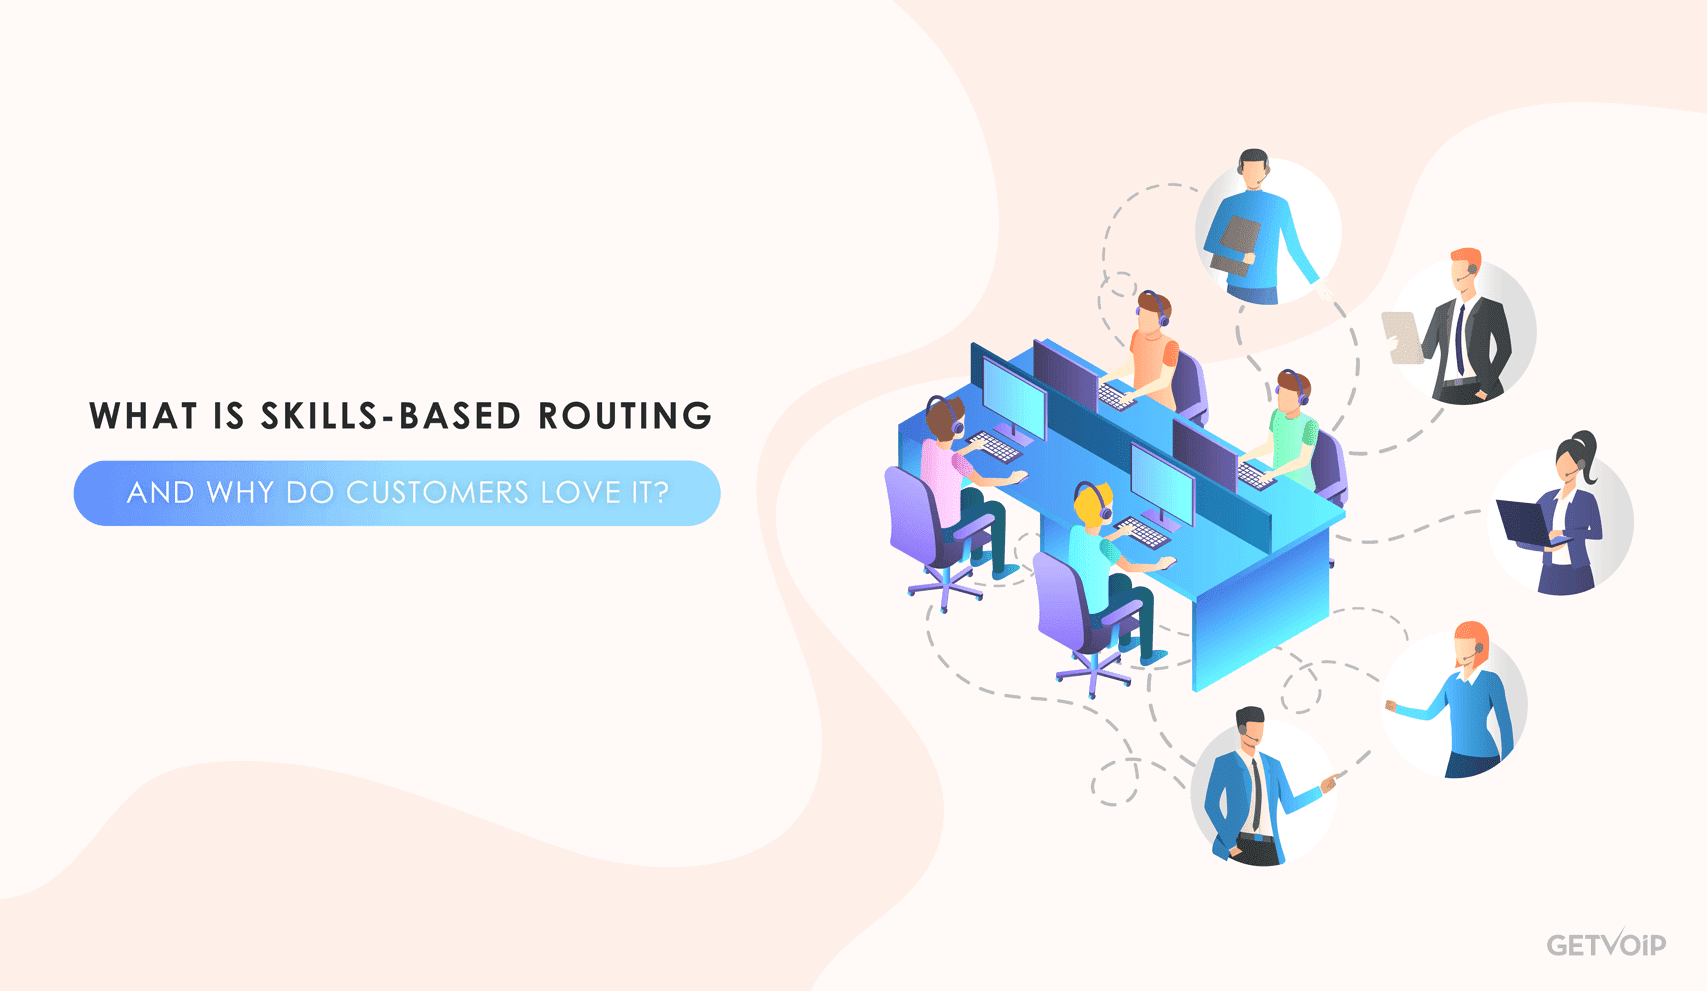 What is Skill-Based Routing and Why Do Customers Love It?